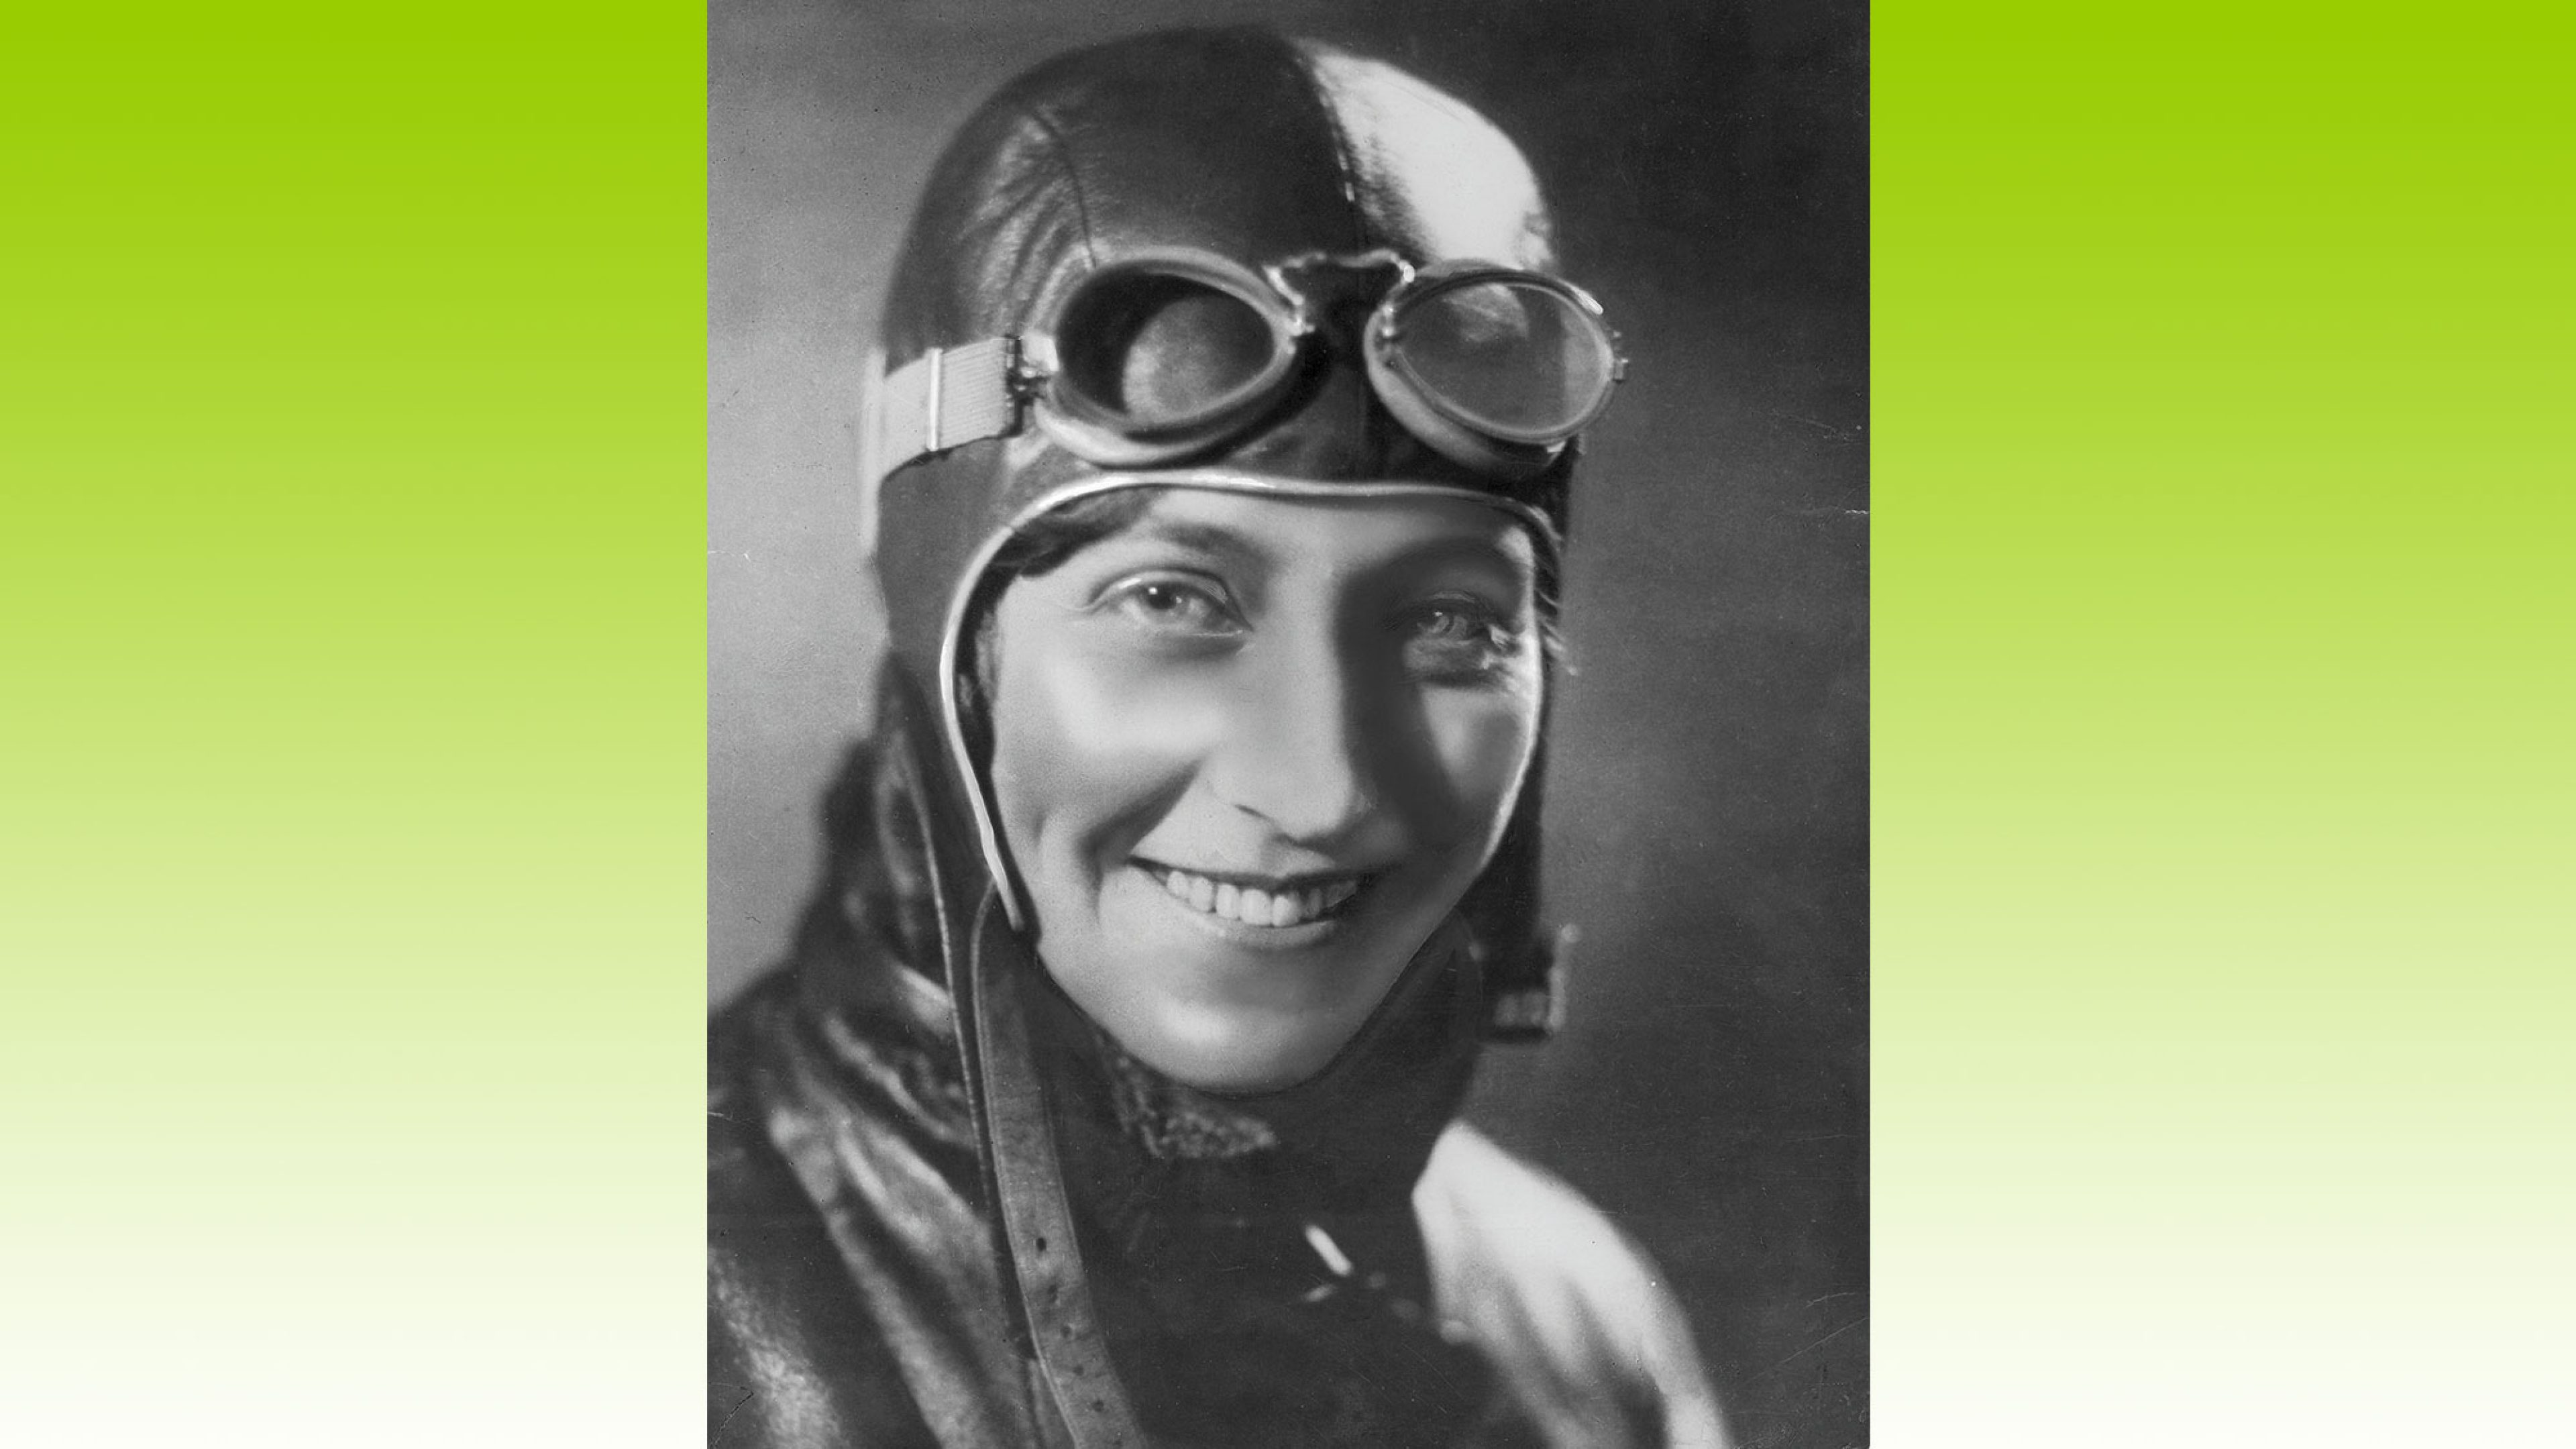 Amy Johnson, the first woman to complete a solo flight in a plane from England to Australia, was sponsored by BP for her round-Britain tour in 1930